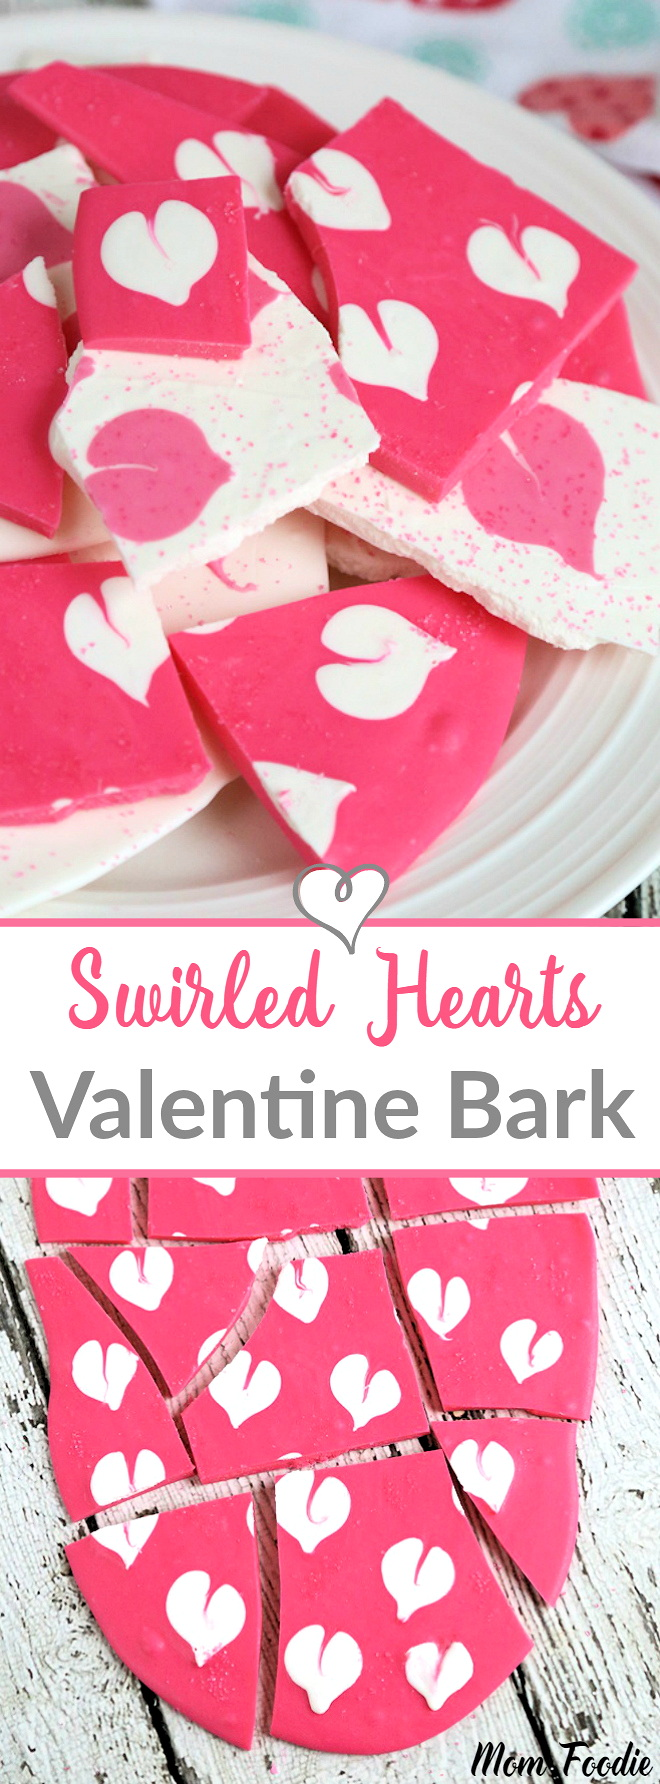 Valentine's Chocolate Bark: Homemade Candy